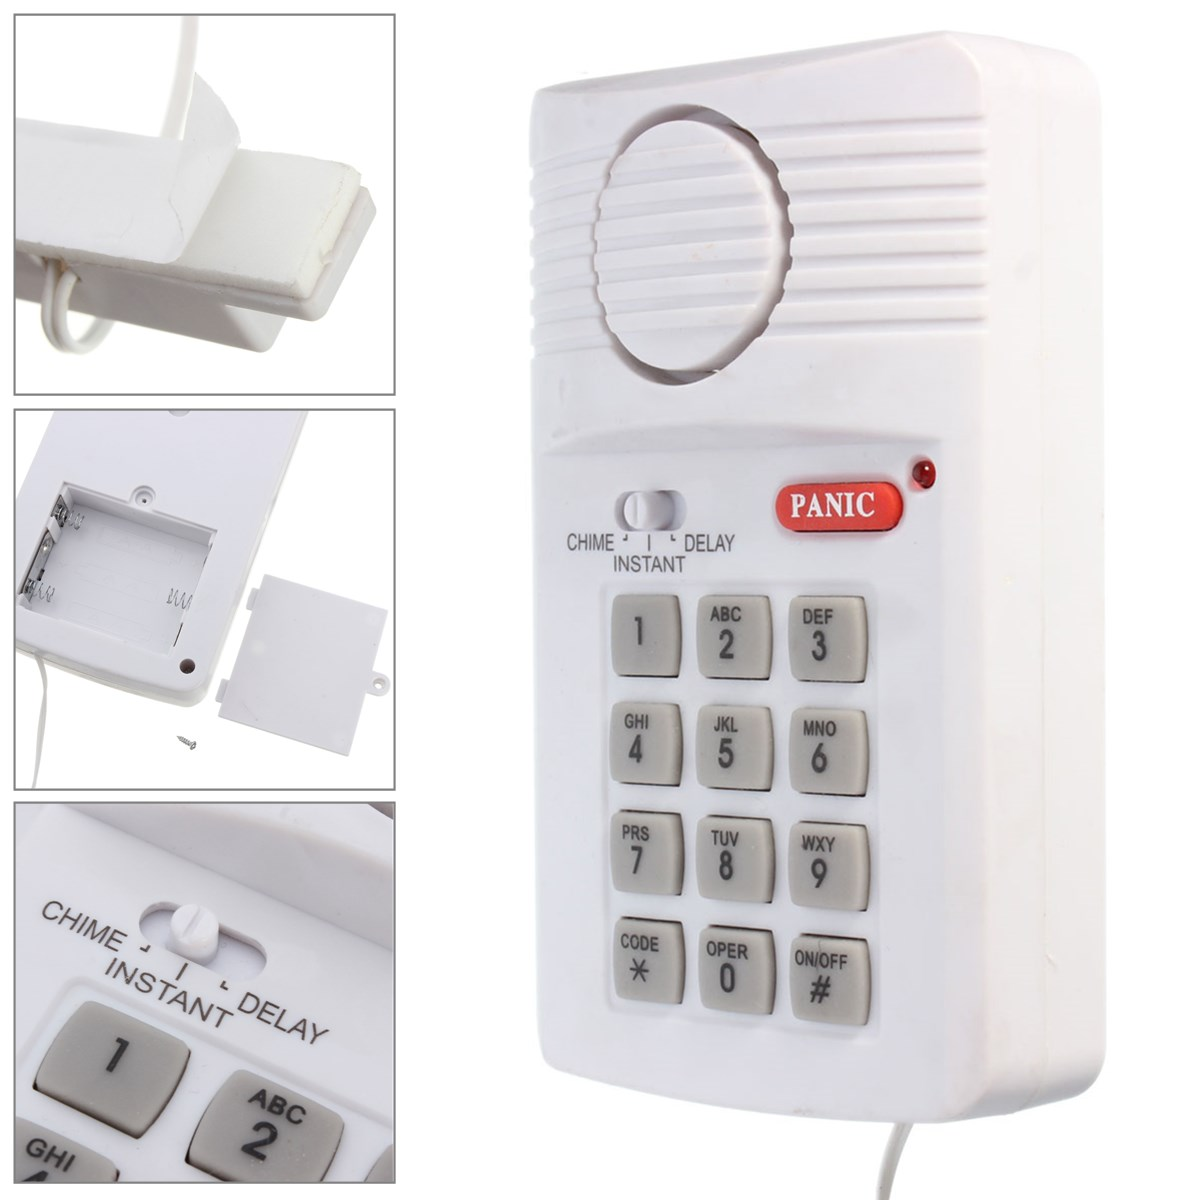 Venta De Sistemas De Seguridad Para El Hogar Wireless Security Keypad Alarm System With Panic Button